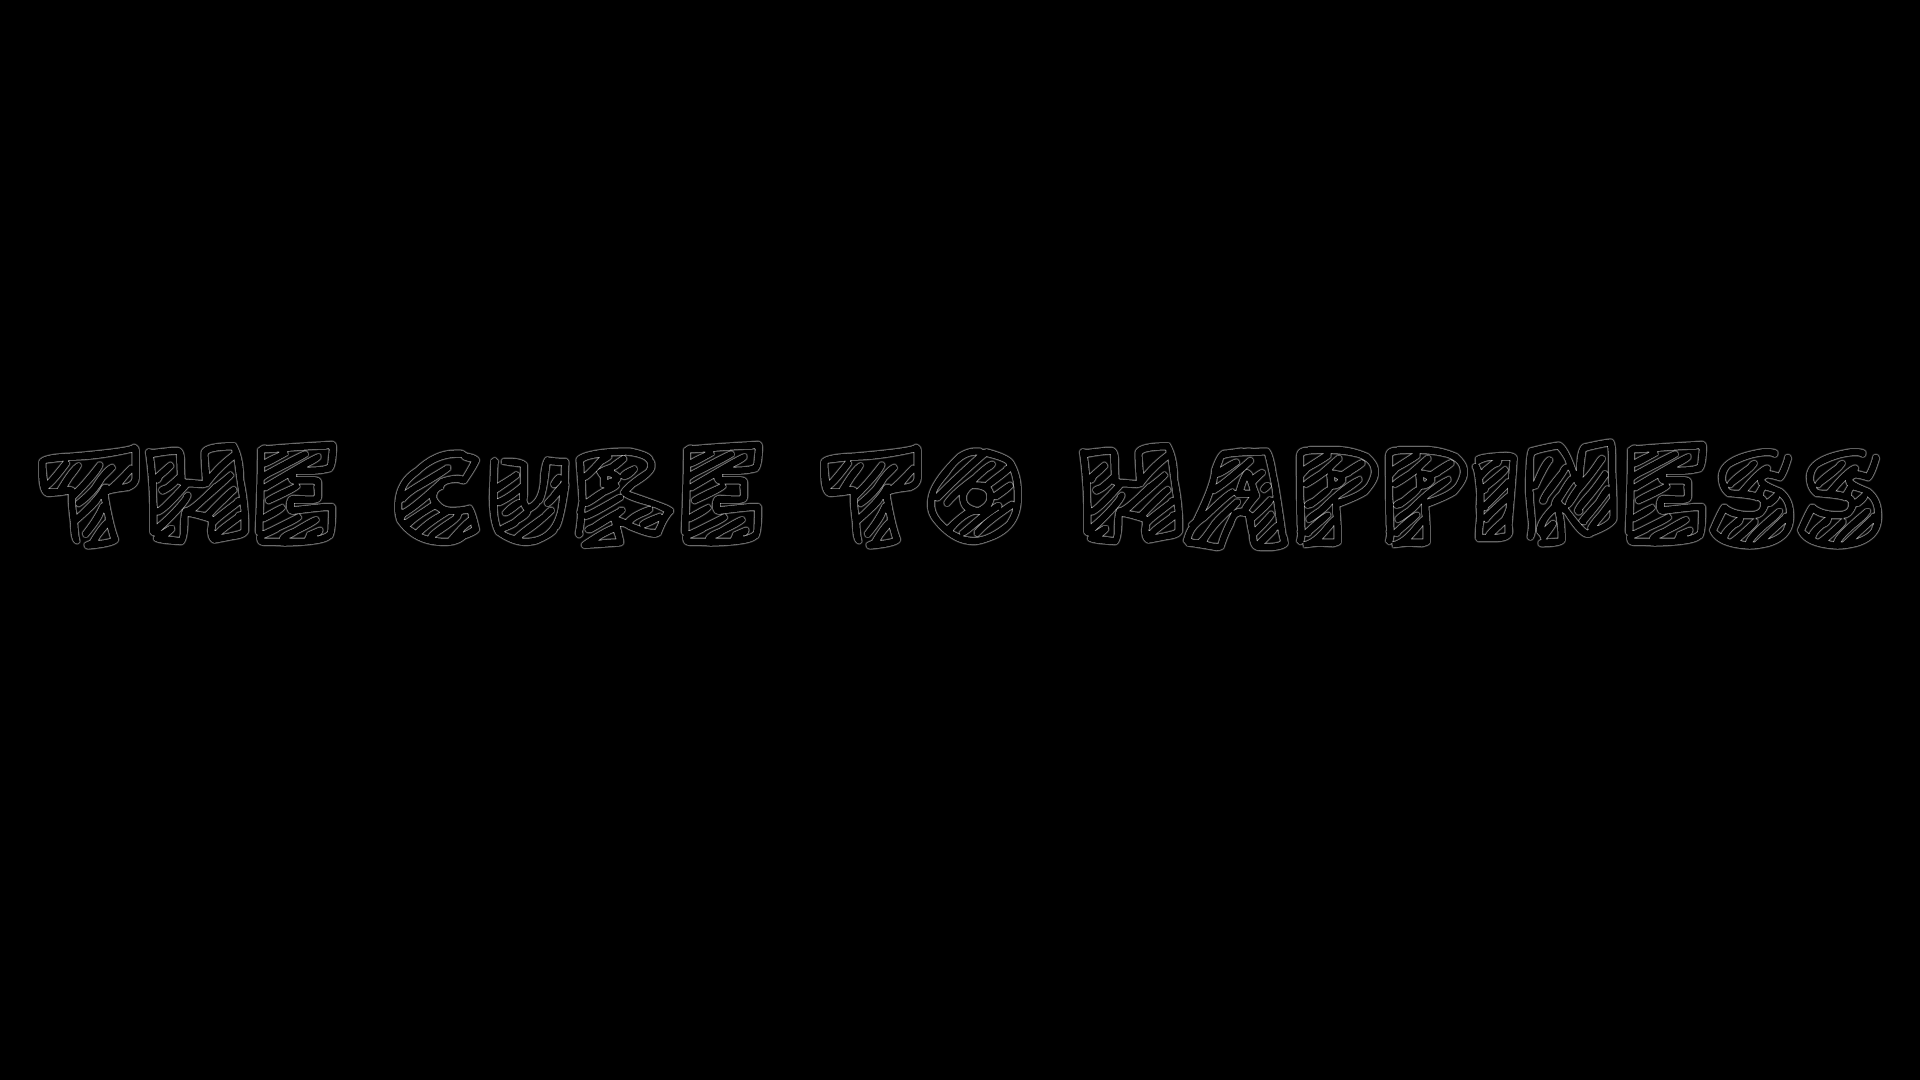 The Cure to Happiness